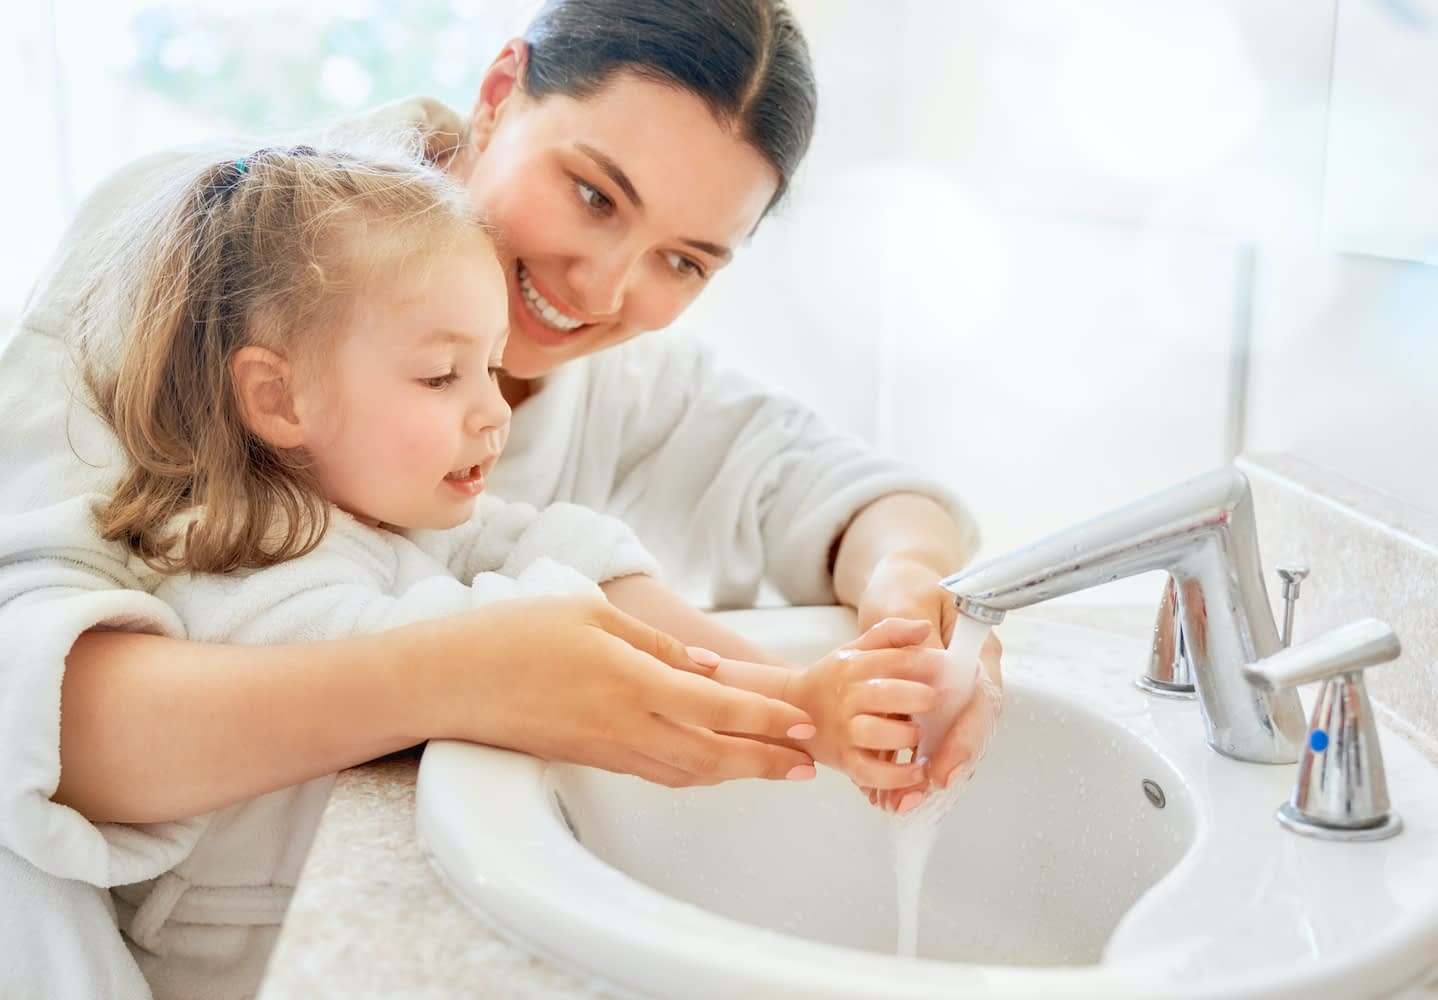 Visit Prevent Child Abuse America for Coronavirus tips for parents, children and others